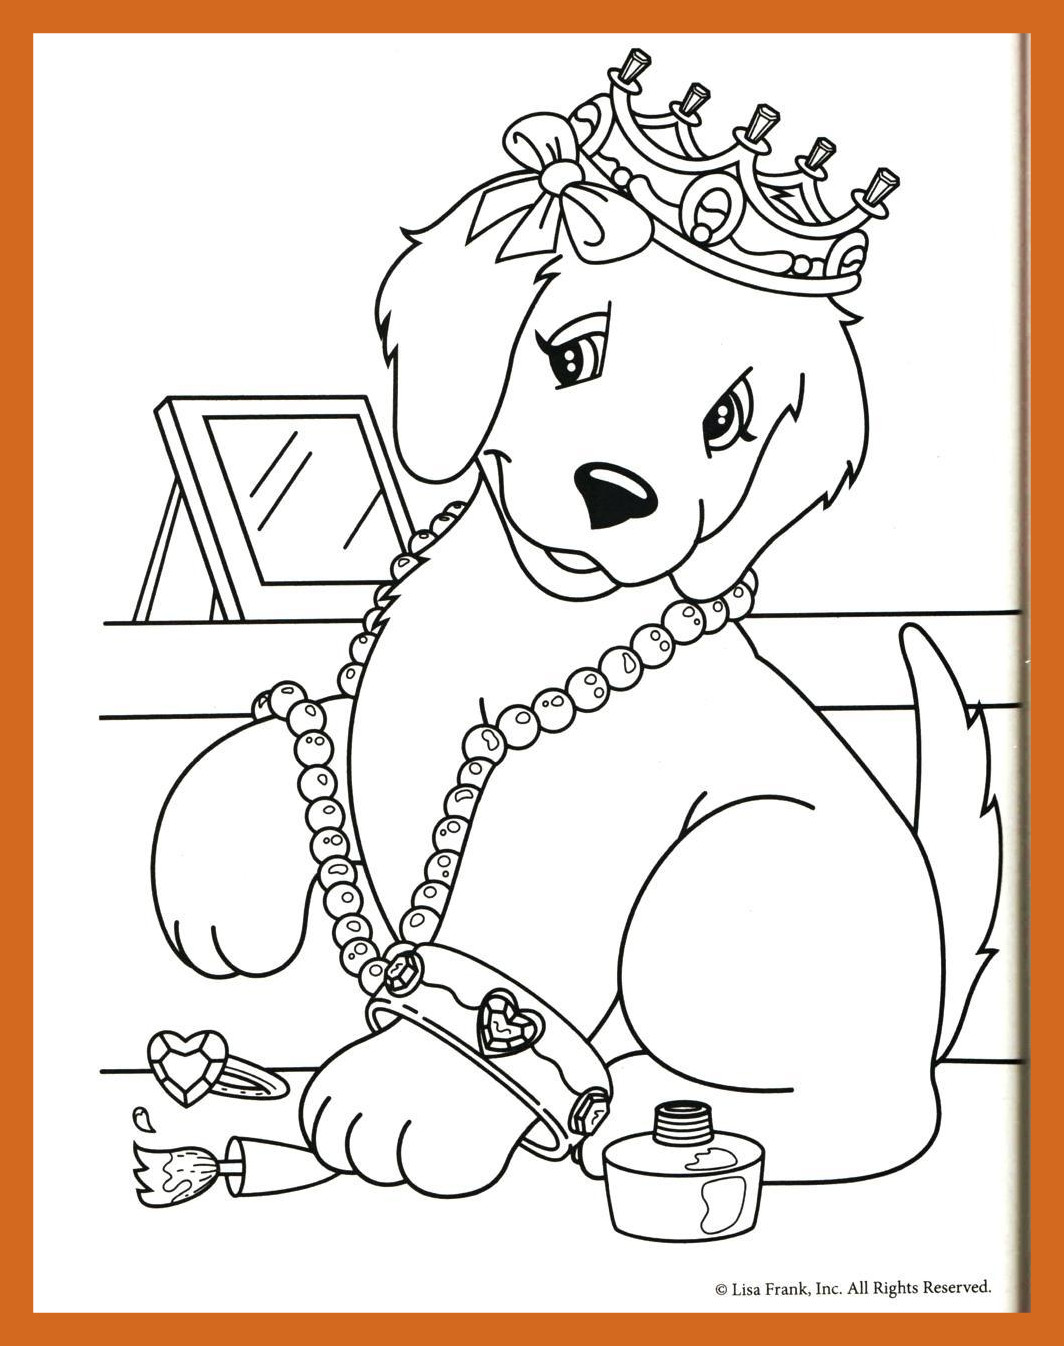 1064x1346 Amazing Coloring Lisa Frank Printable Pages Of Puppies A With Idea